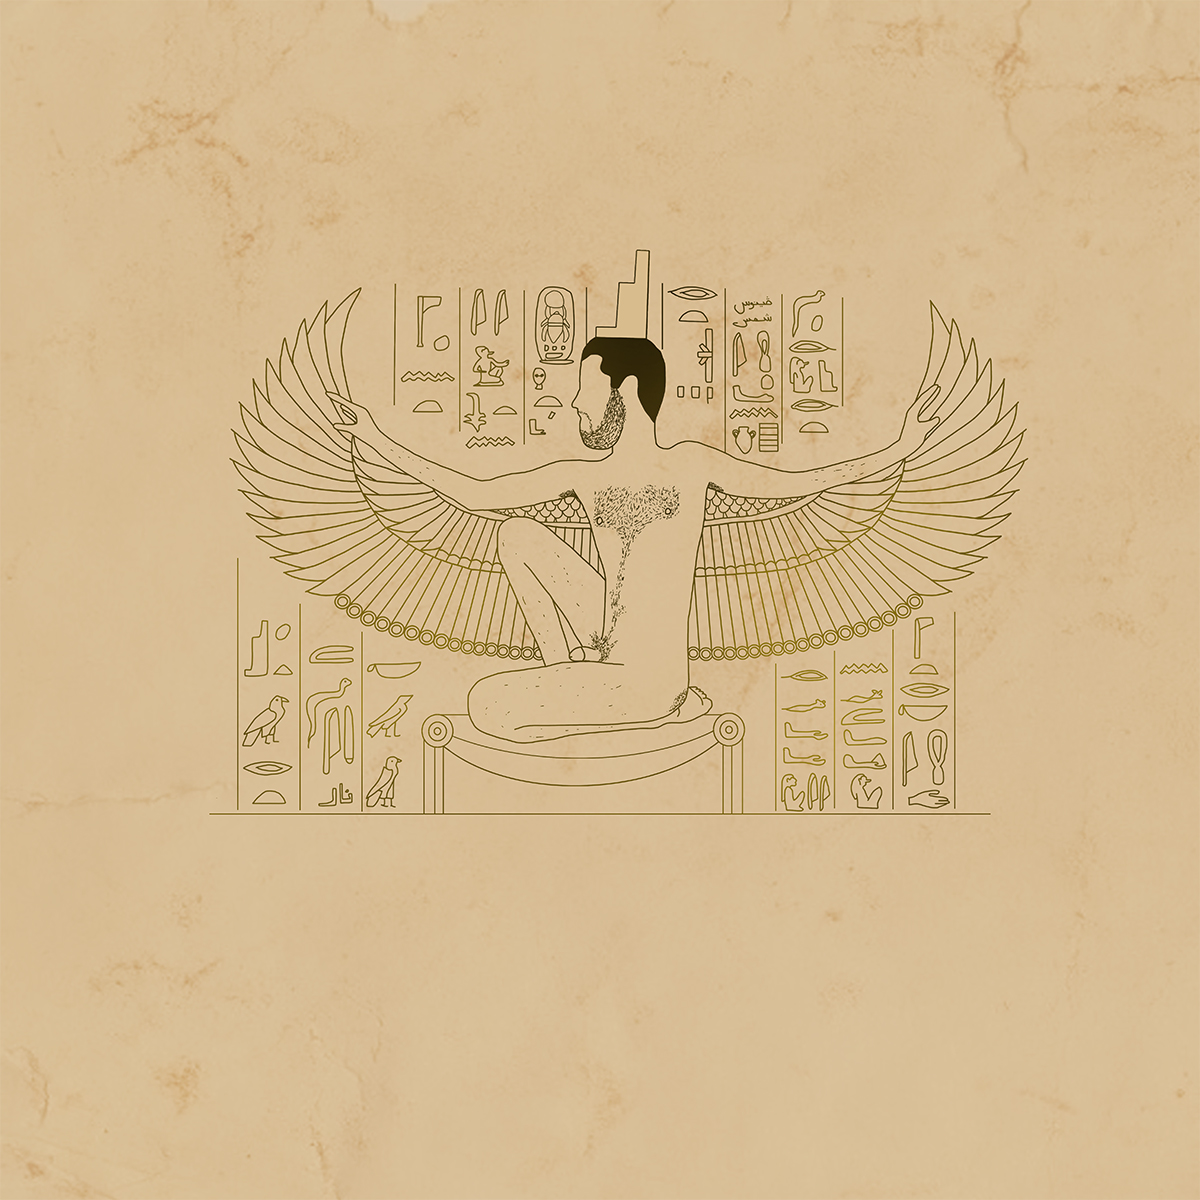 Karam Natour drawing of naked human body as the Goddess Isis of Egyptian mythology.